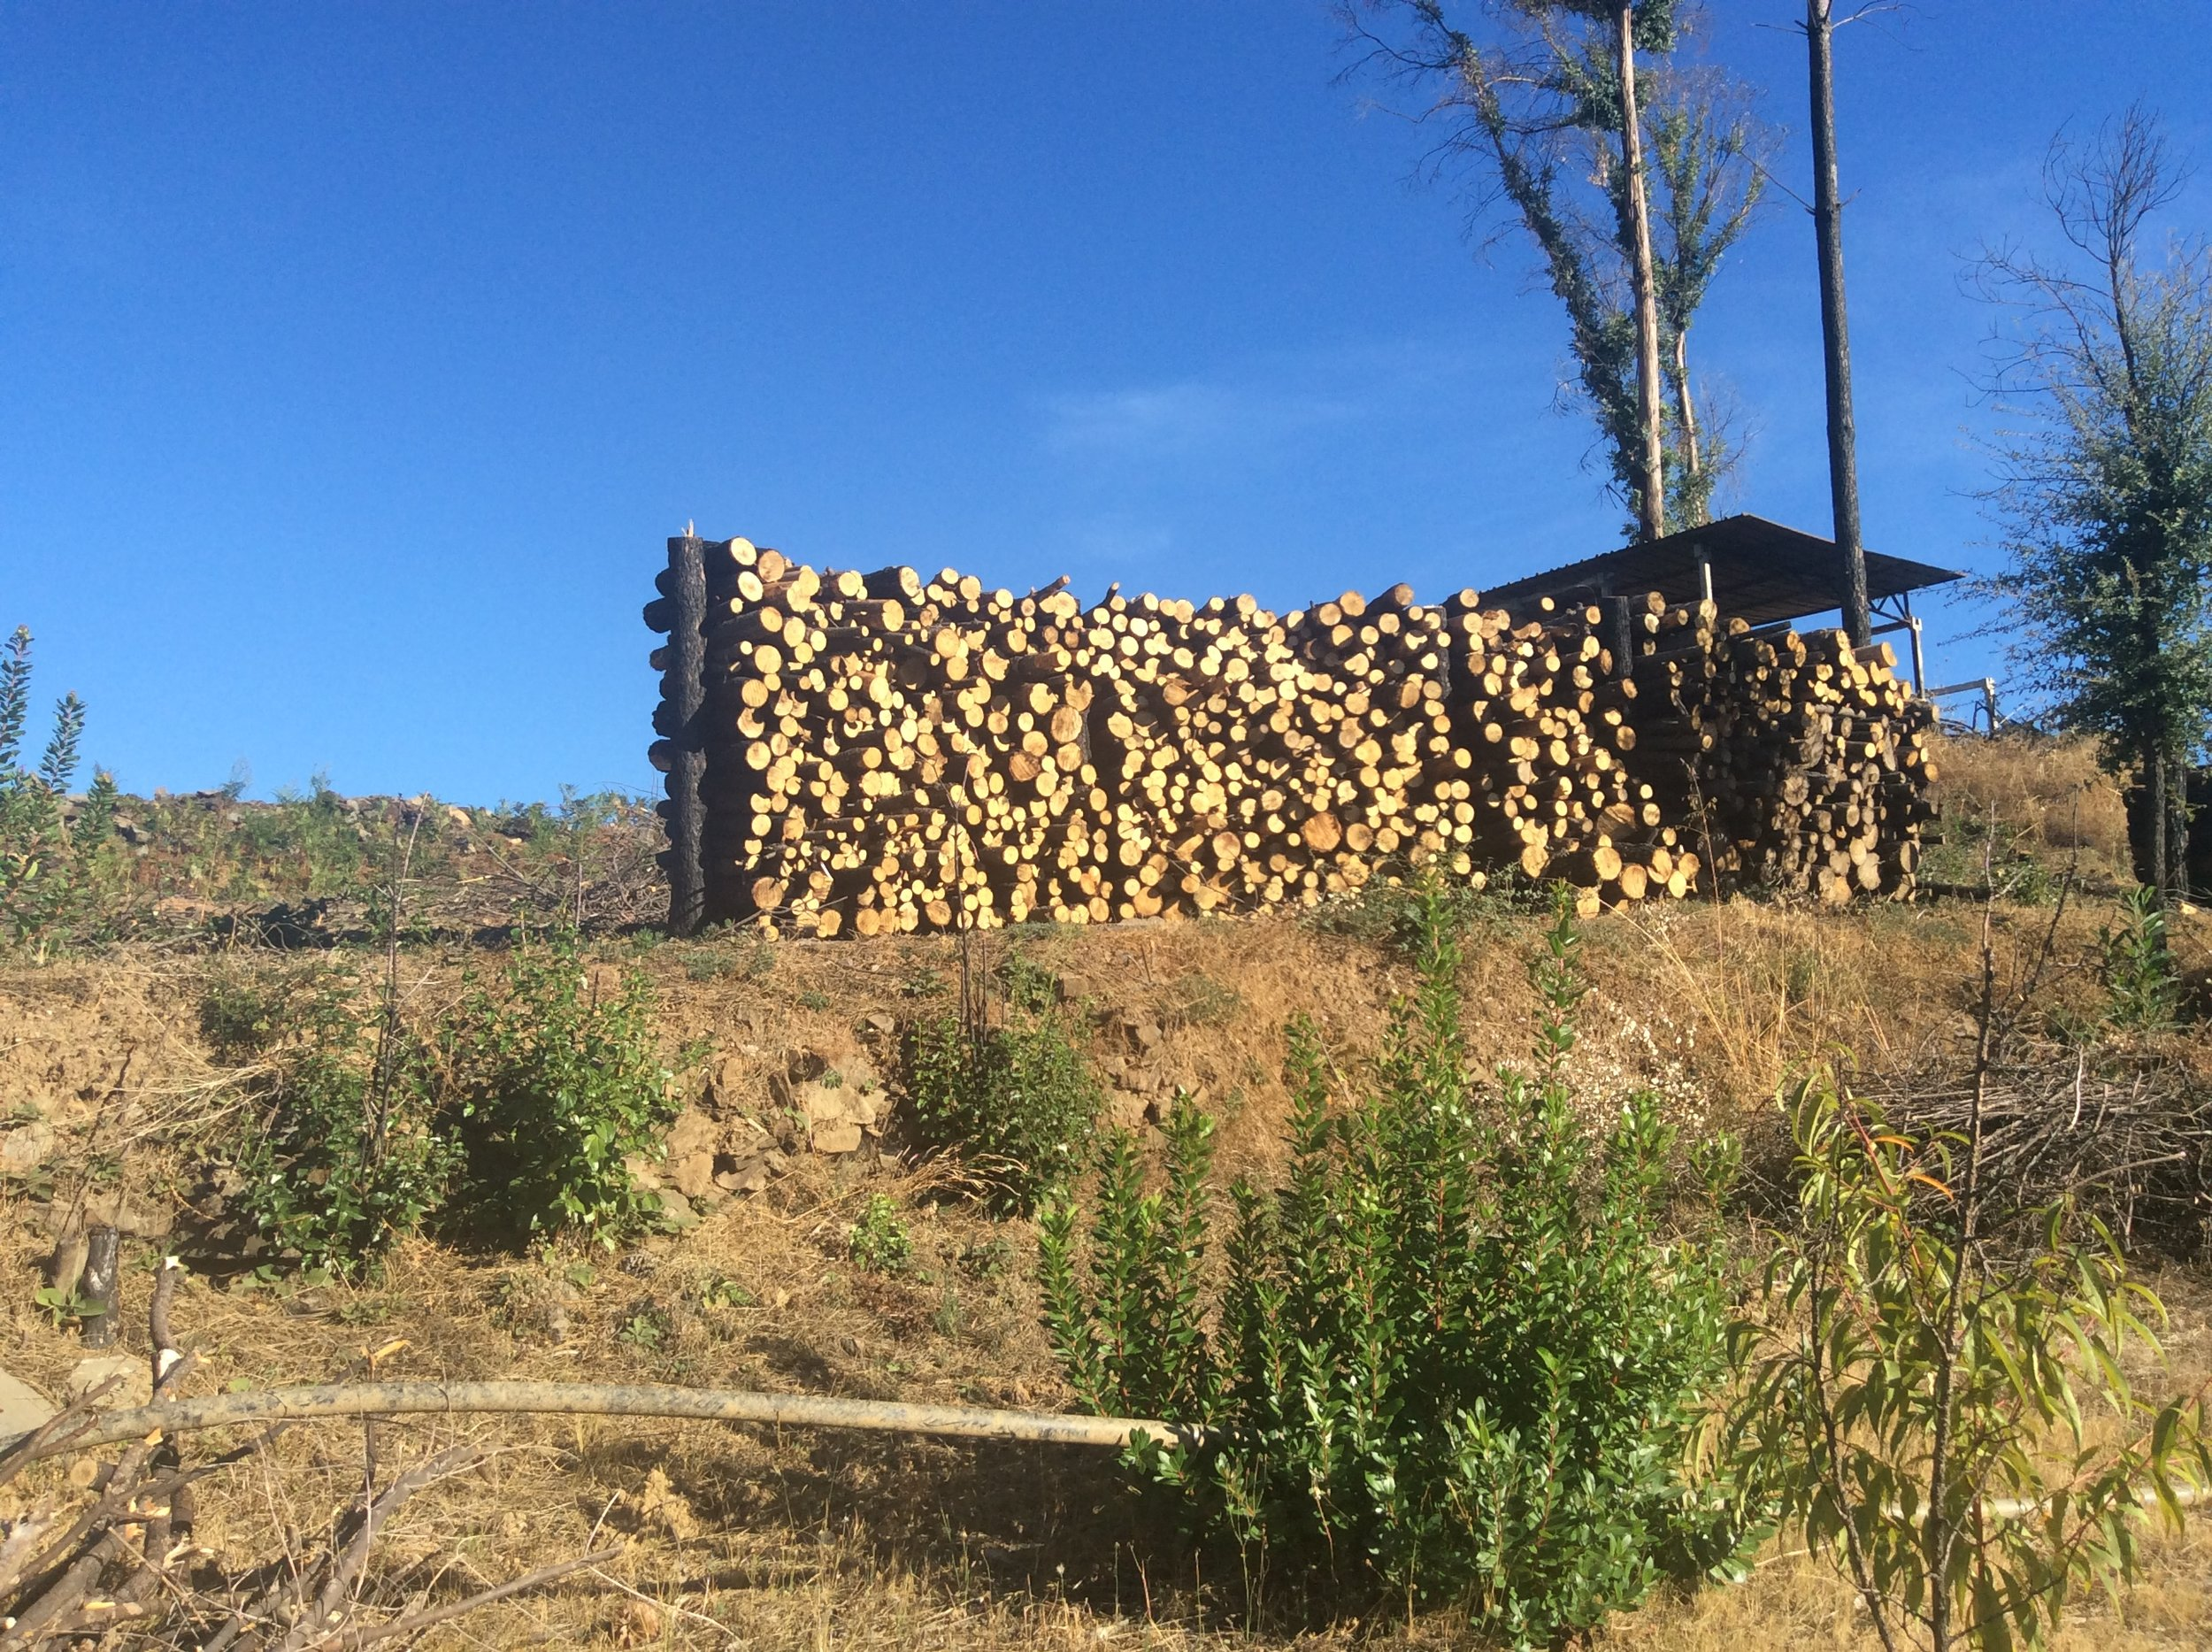 Chopping fire protection channels means we have no shortage of wood…for now.